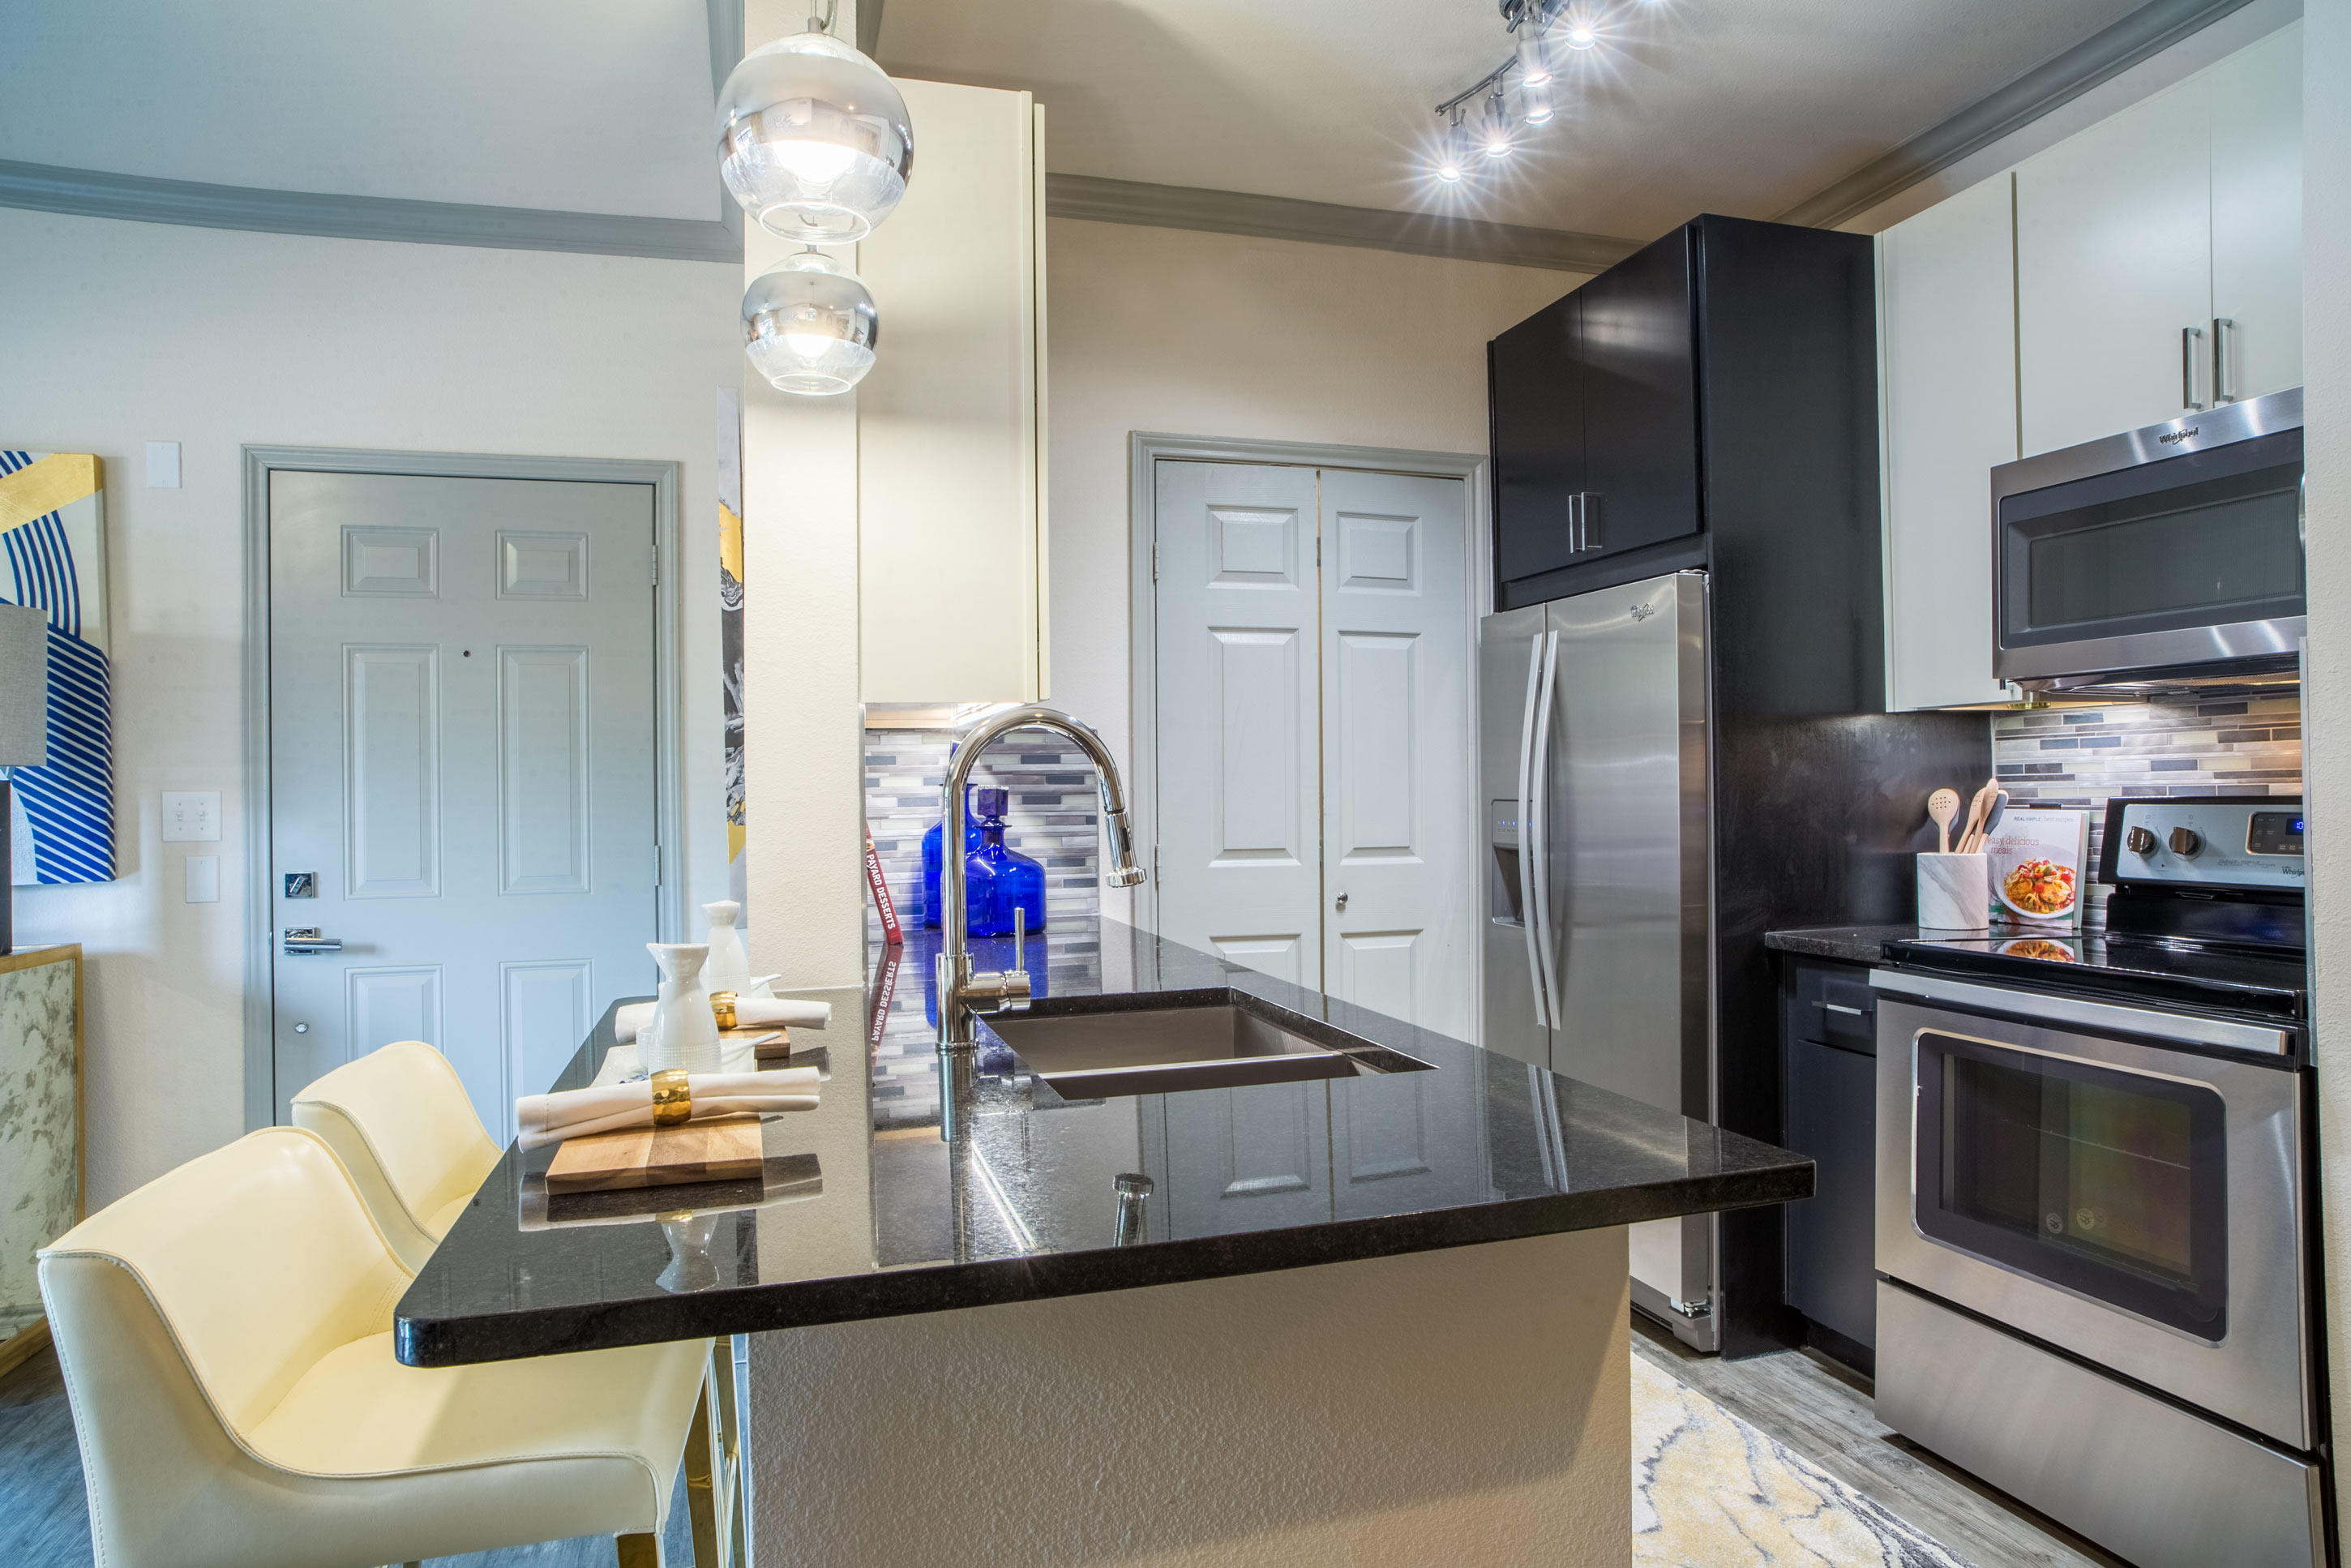 Apartments On Vail St Dallas Tx